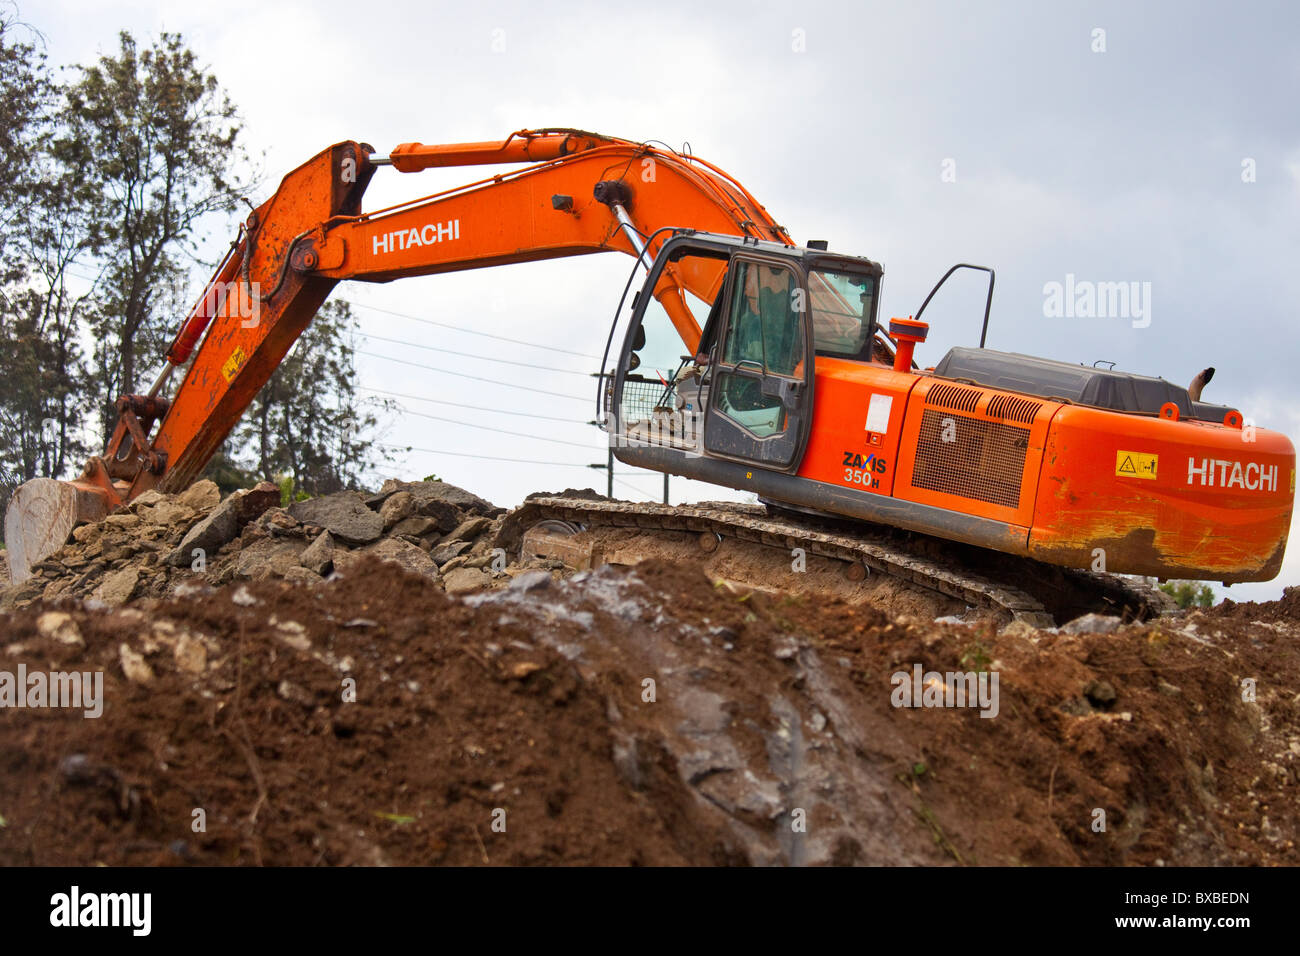 Excavator or digger heavy equipment working on highway construction in Nairobi, Kenya Stock Photo